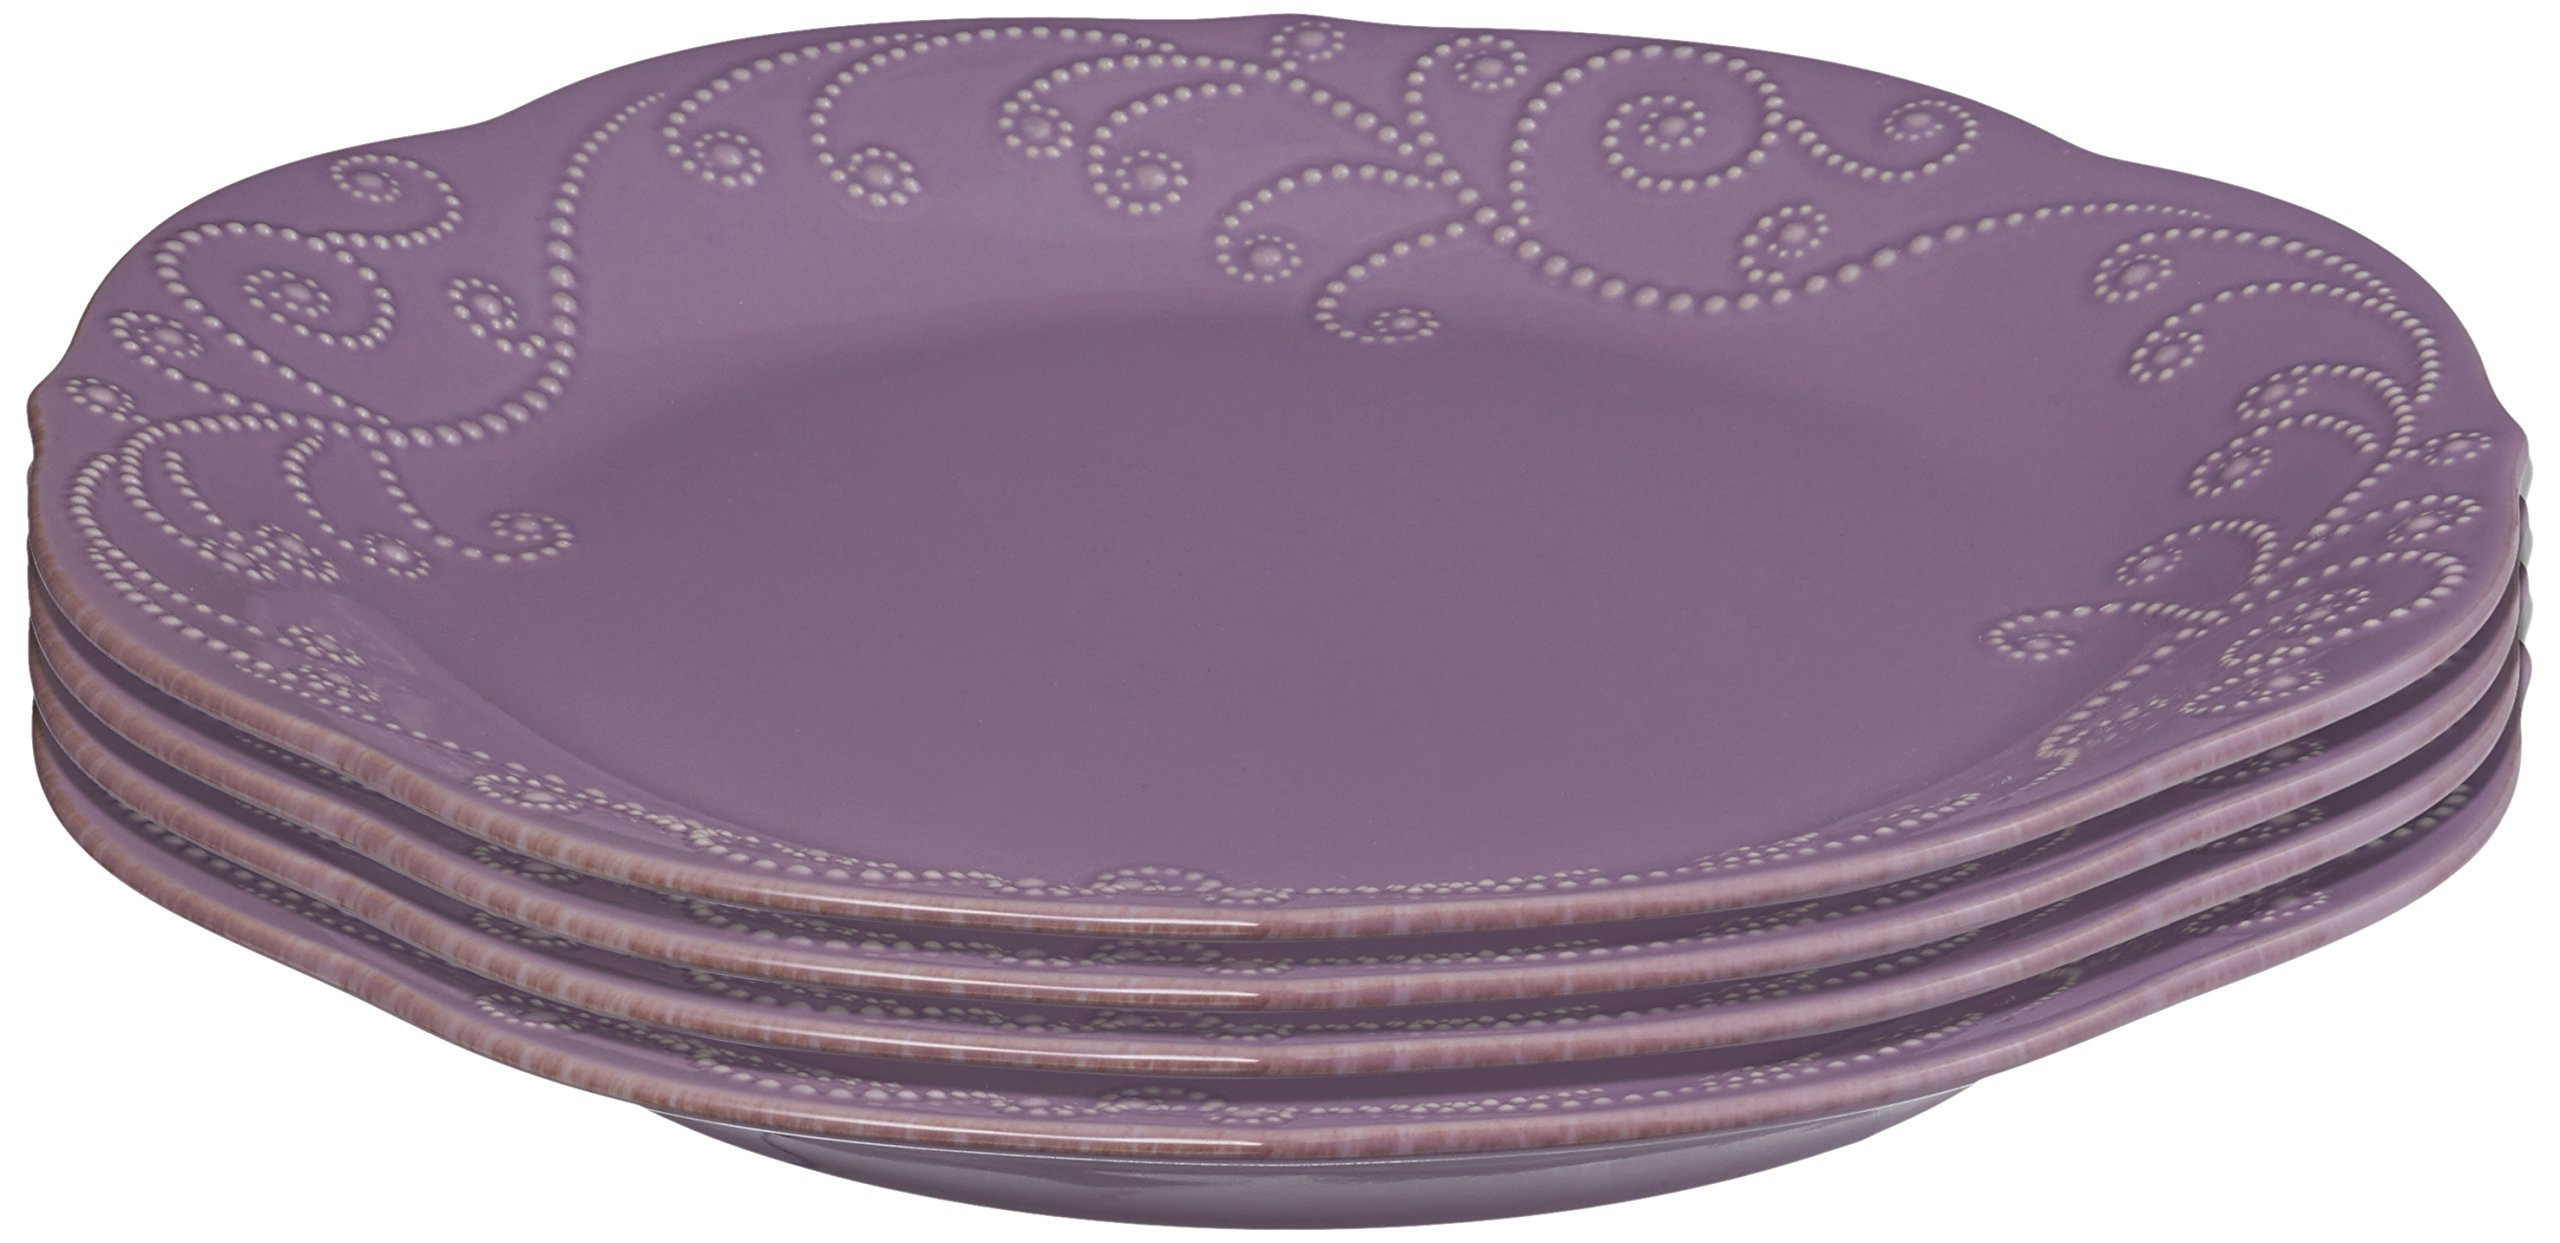 Lenox 843827 FRENCH PERLE VIOLET DW DINNER PLATE - Pack of 4